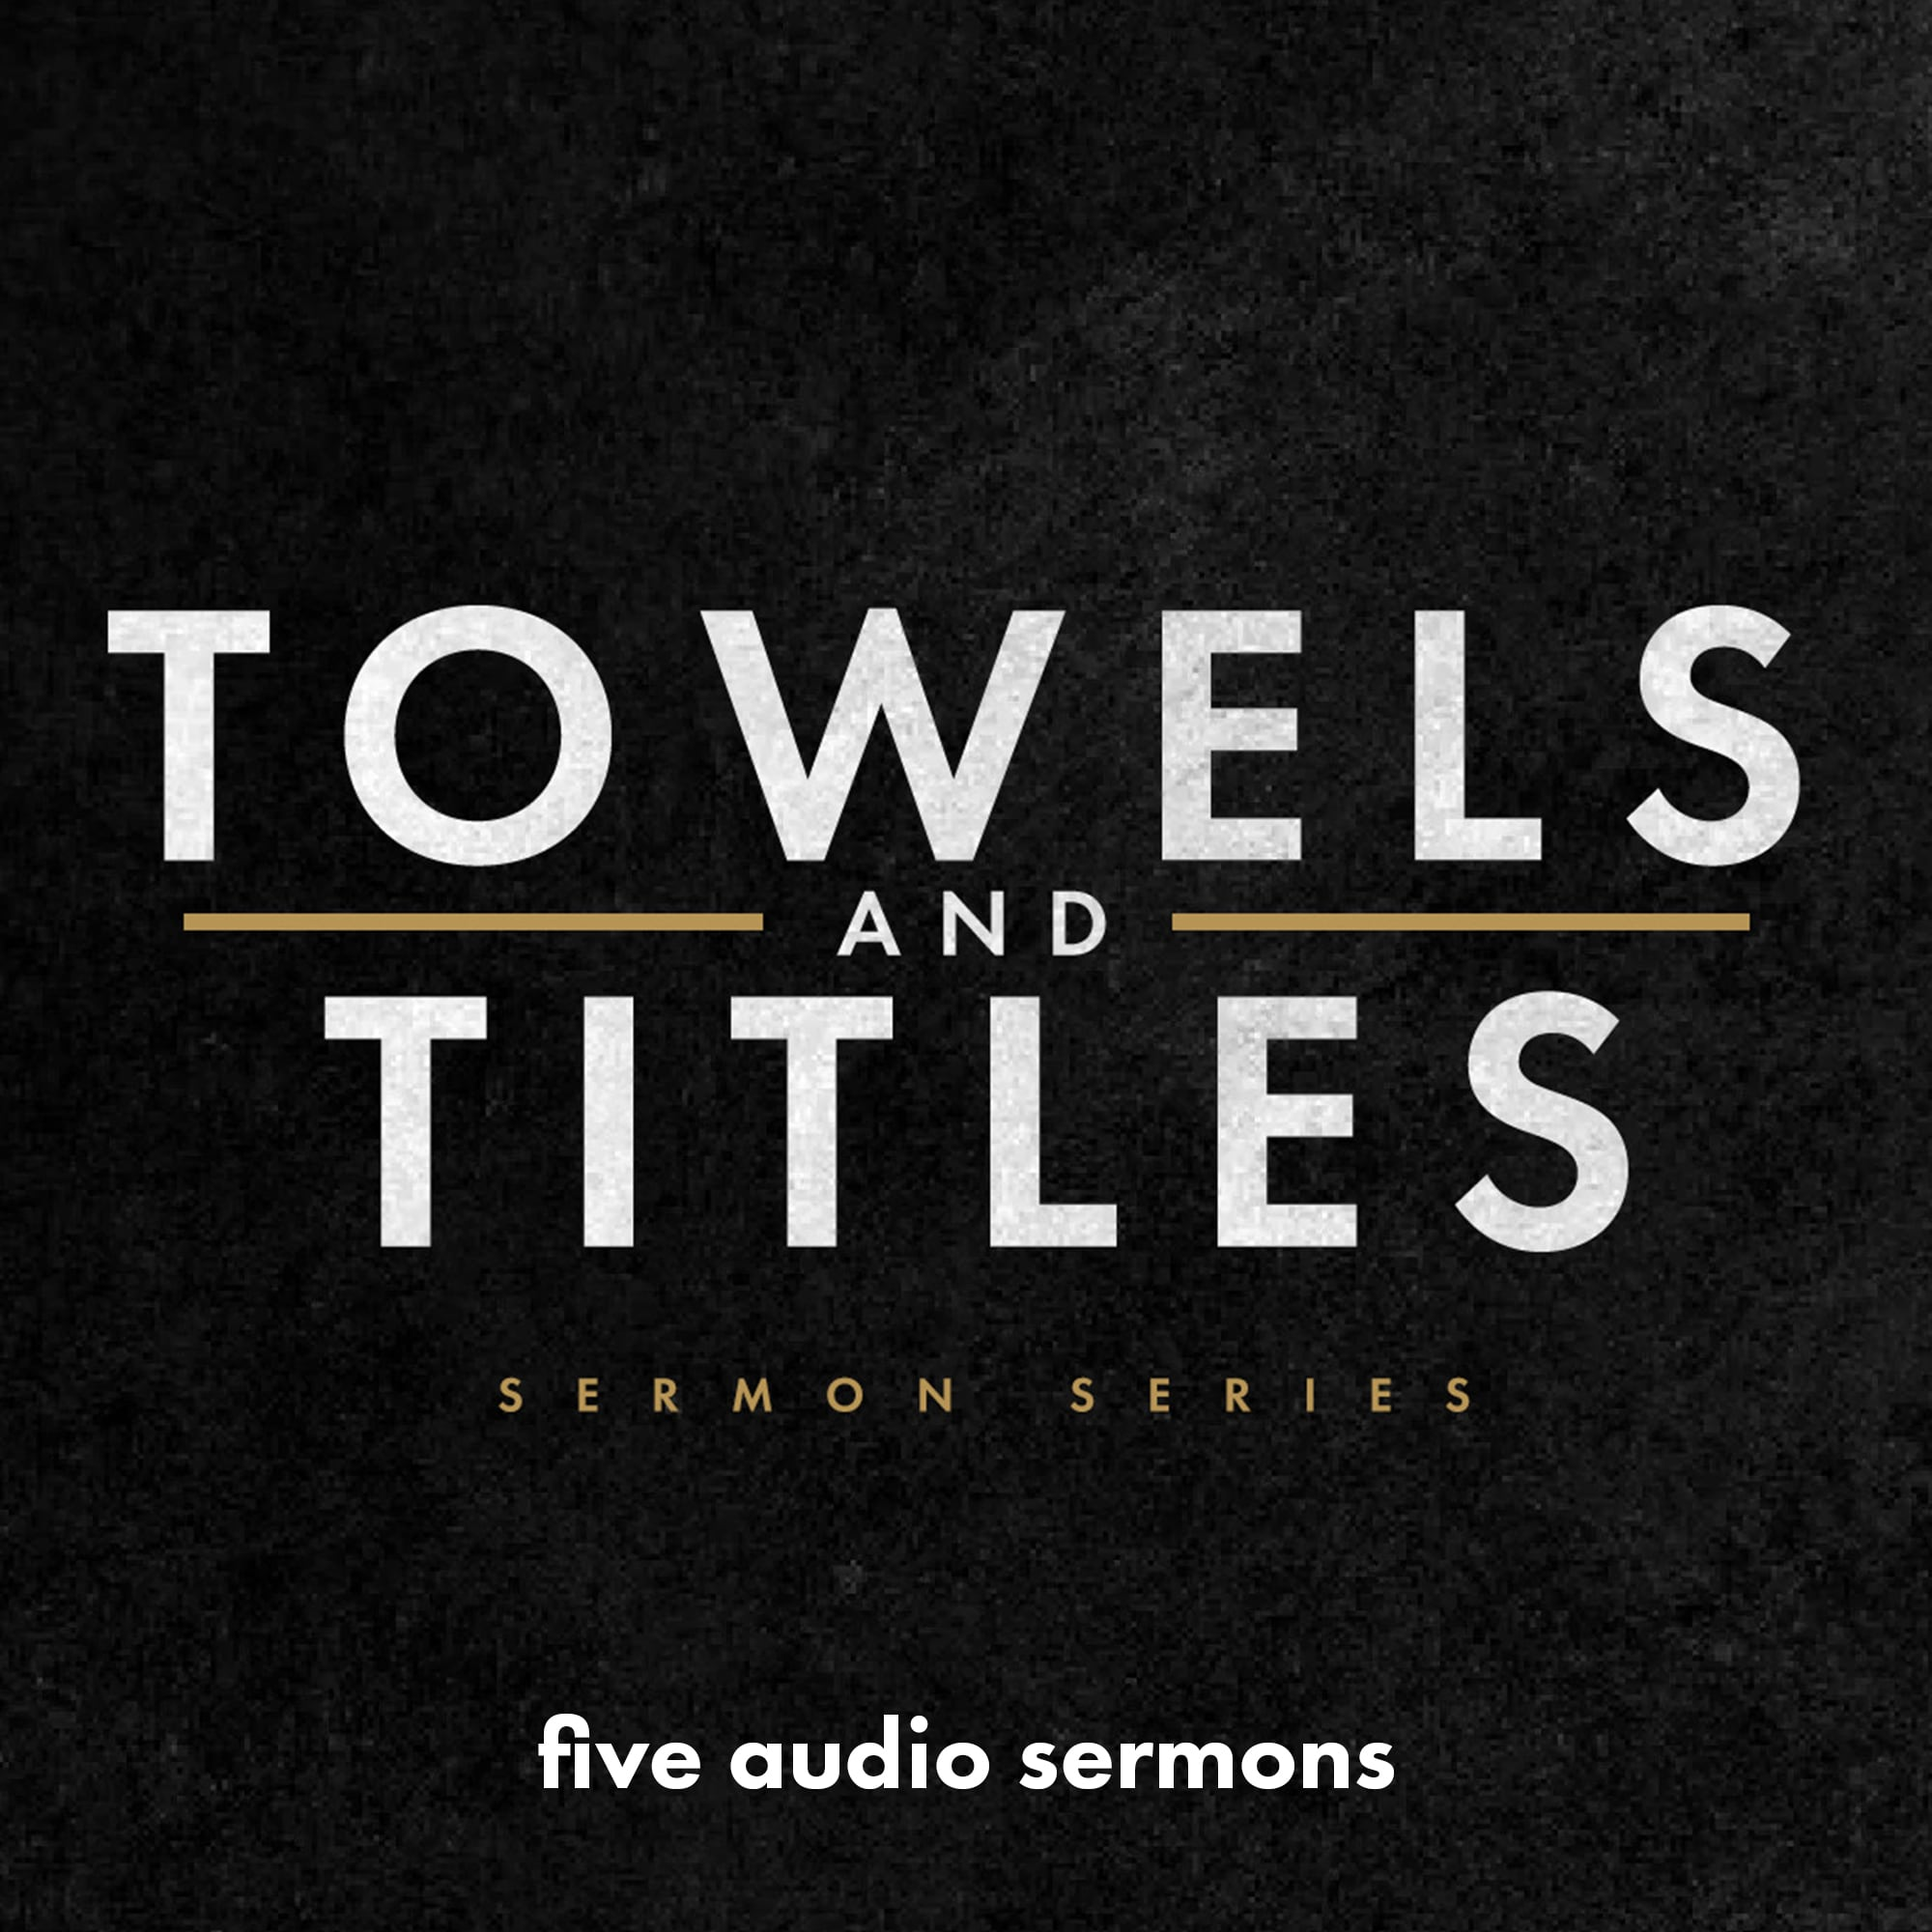 Towels and Titles (Audio Series)